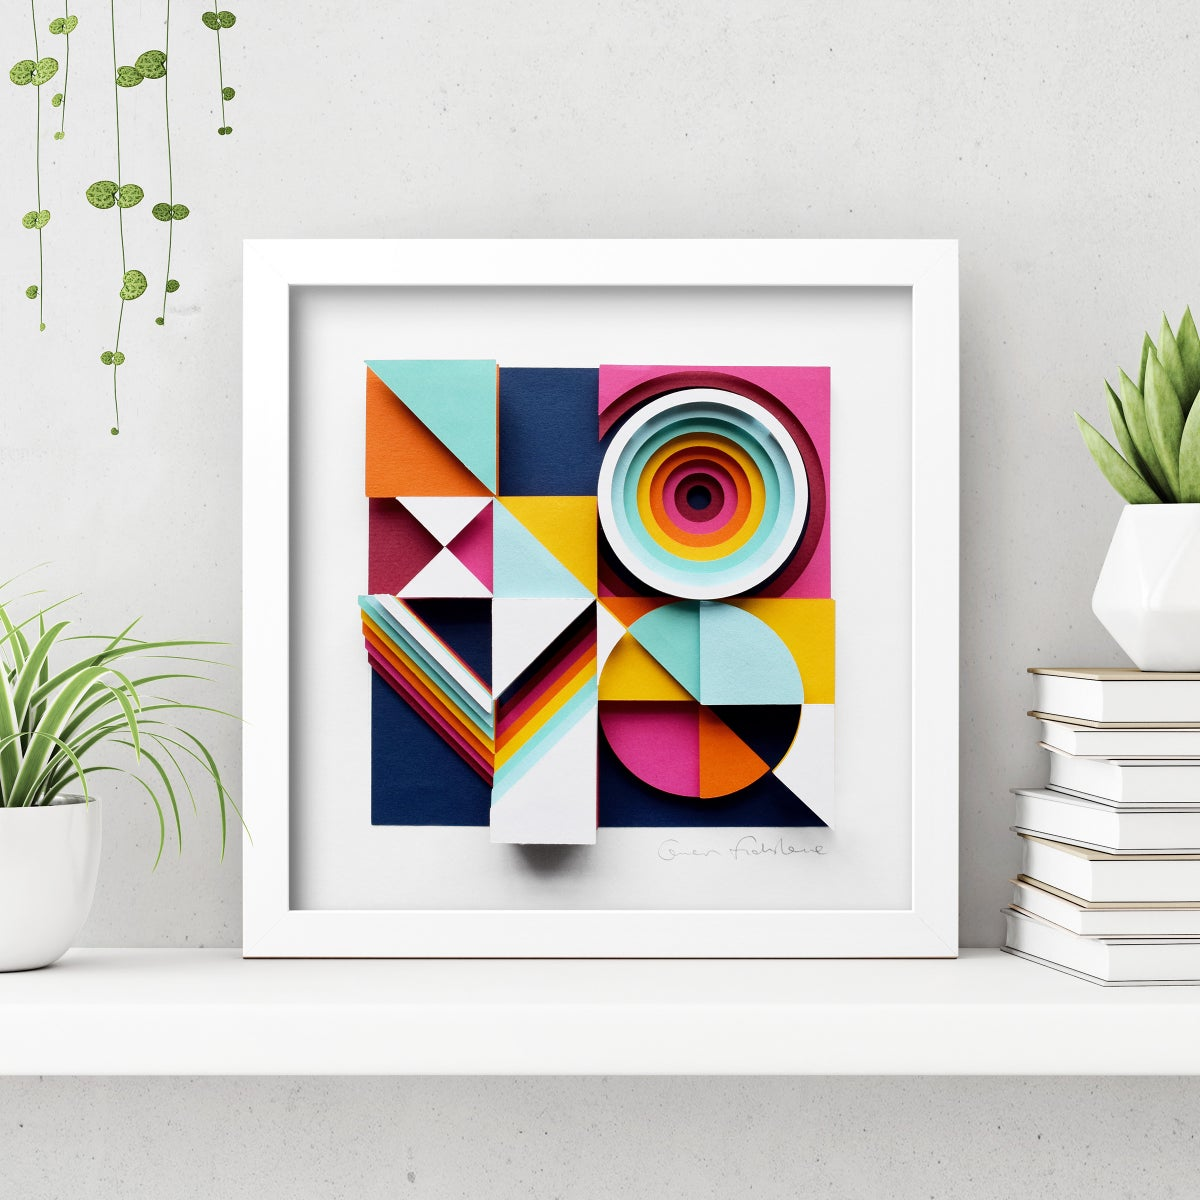 Image of LOVE – Framed Original Paper Cut Artwork